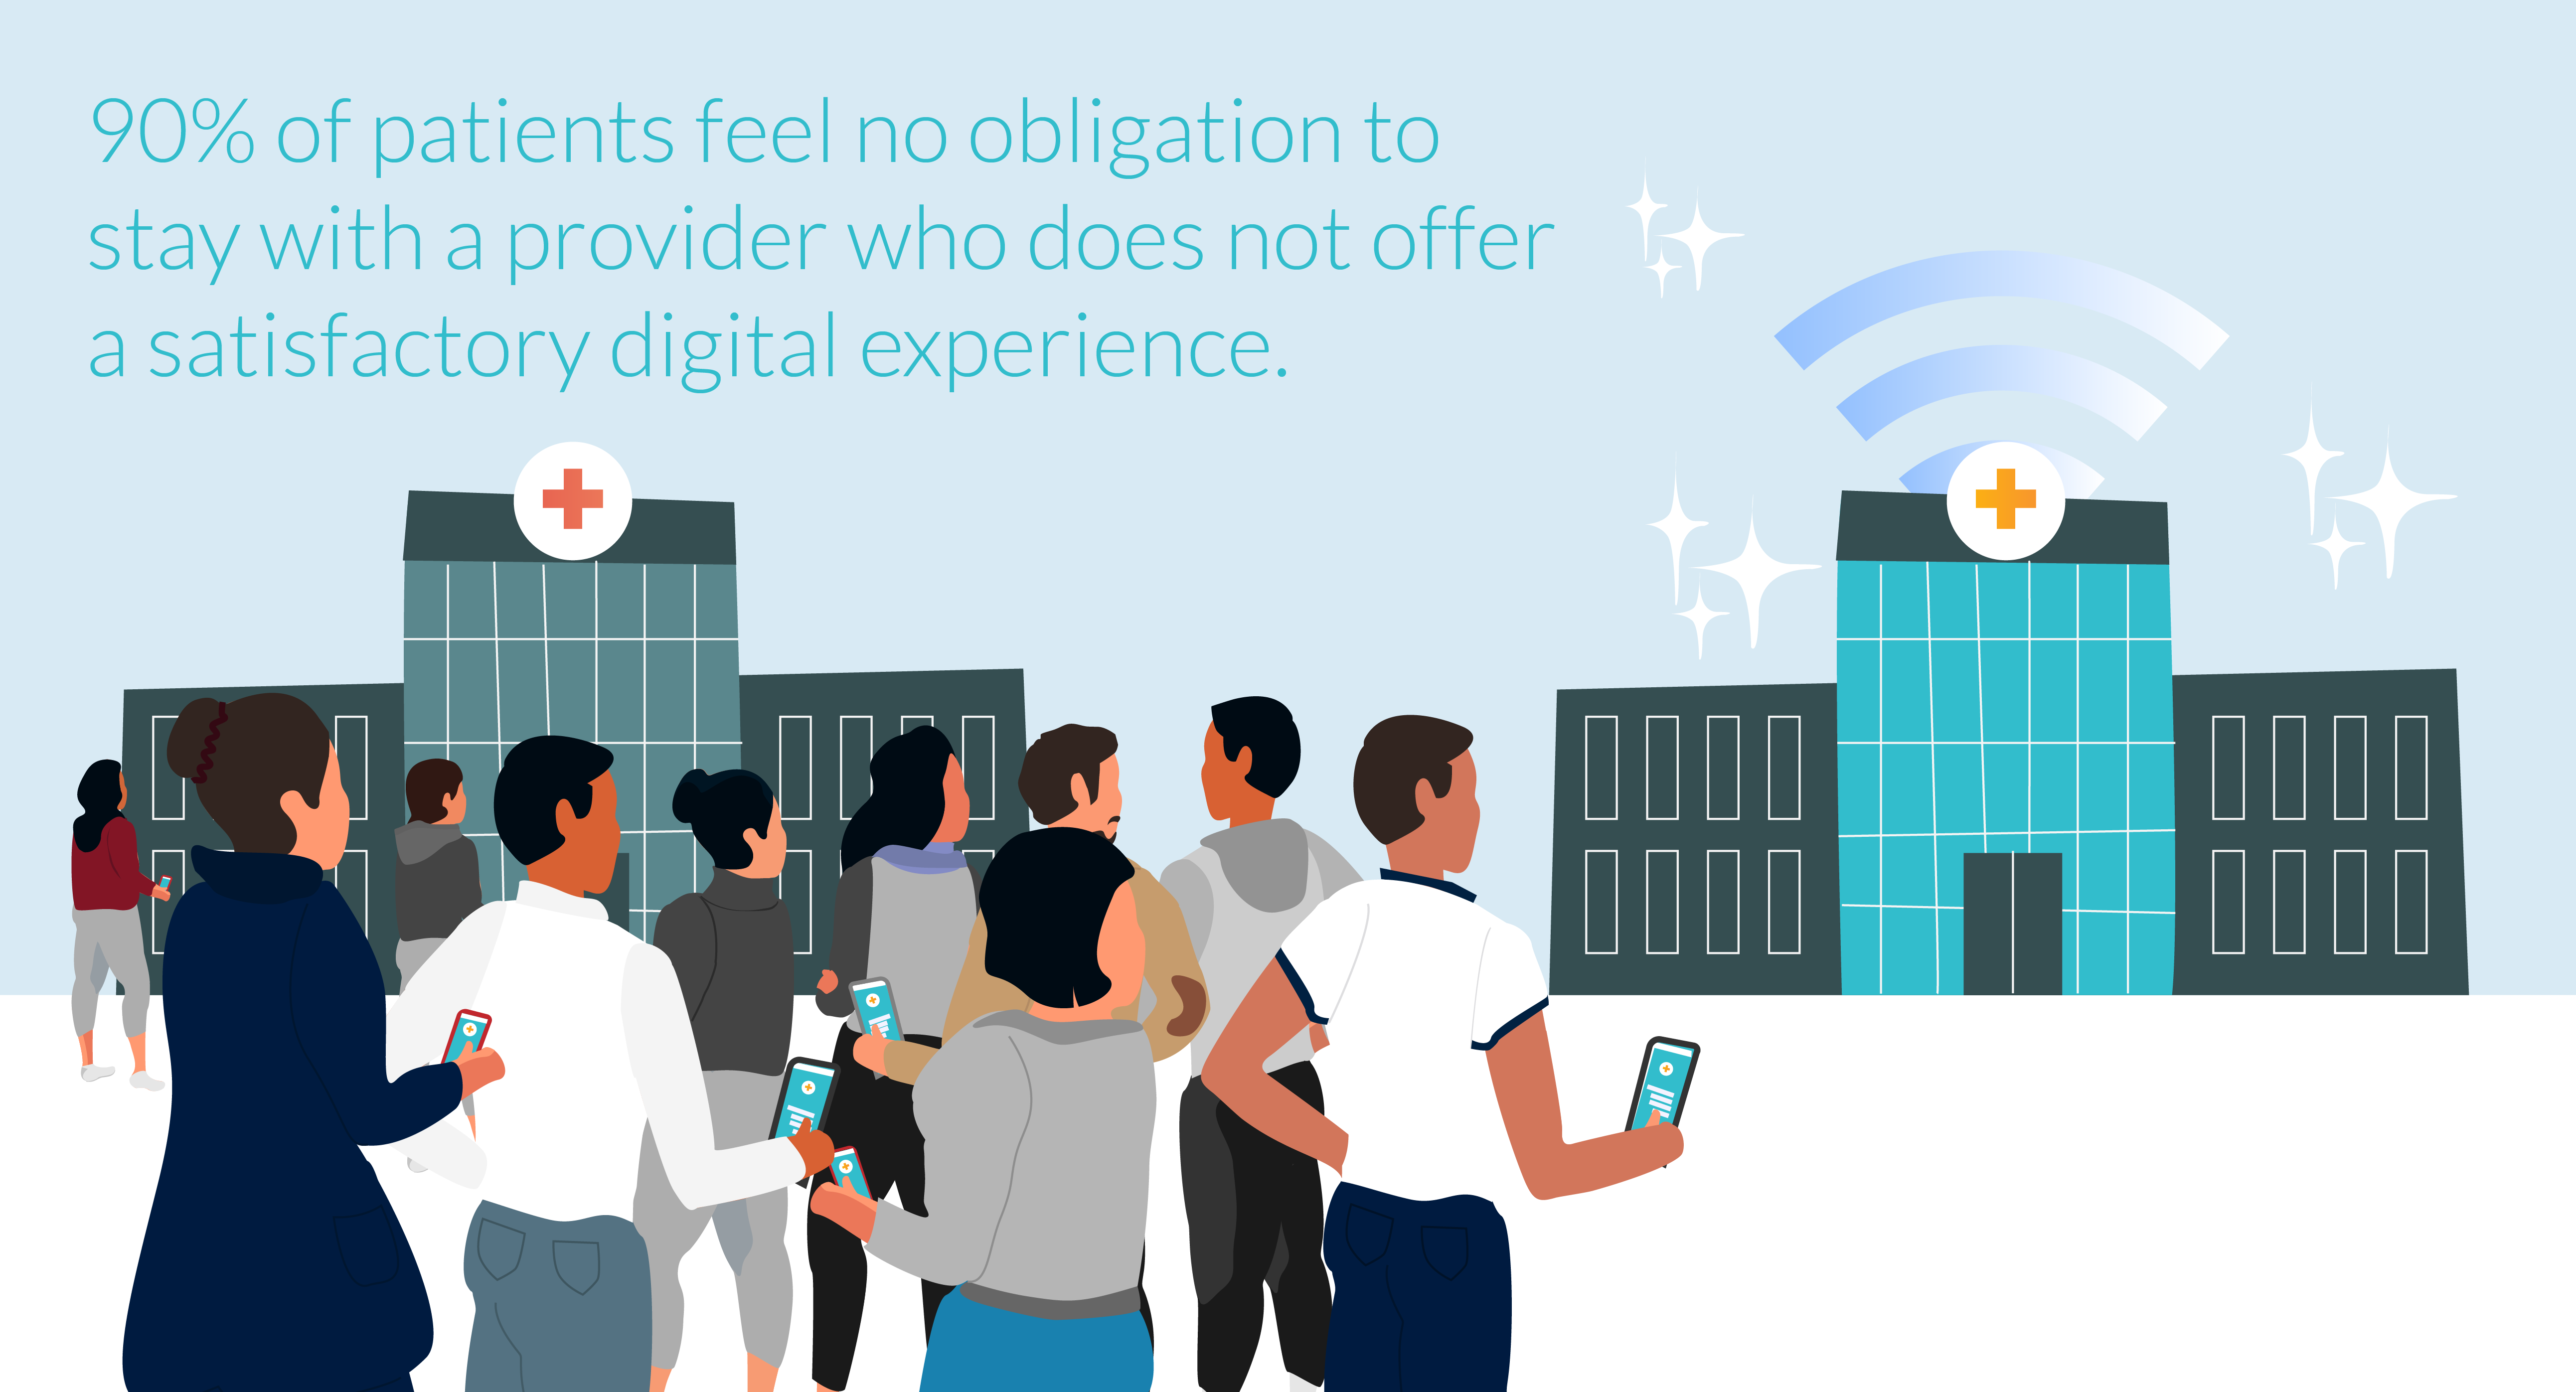 90% of patients feel no obligation to stay with a provider who does not offer a satisfactory digital experience.